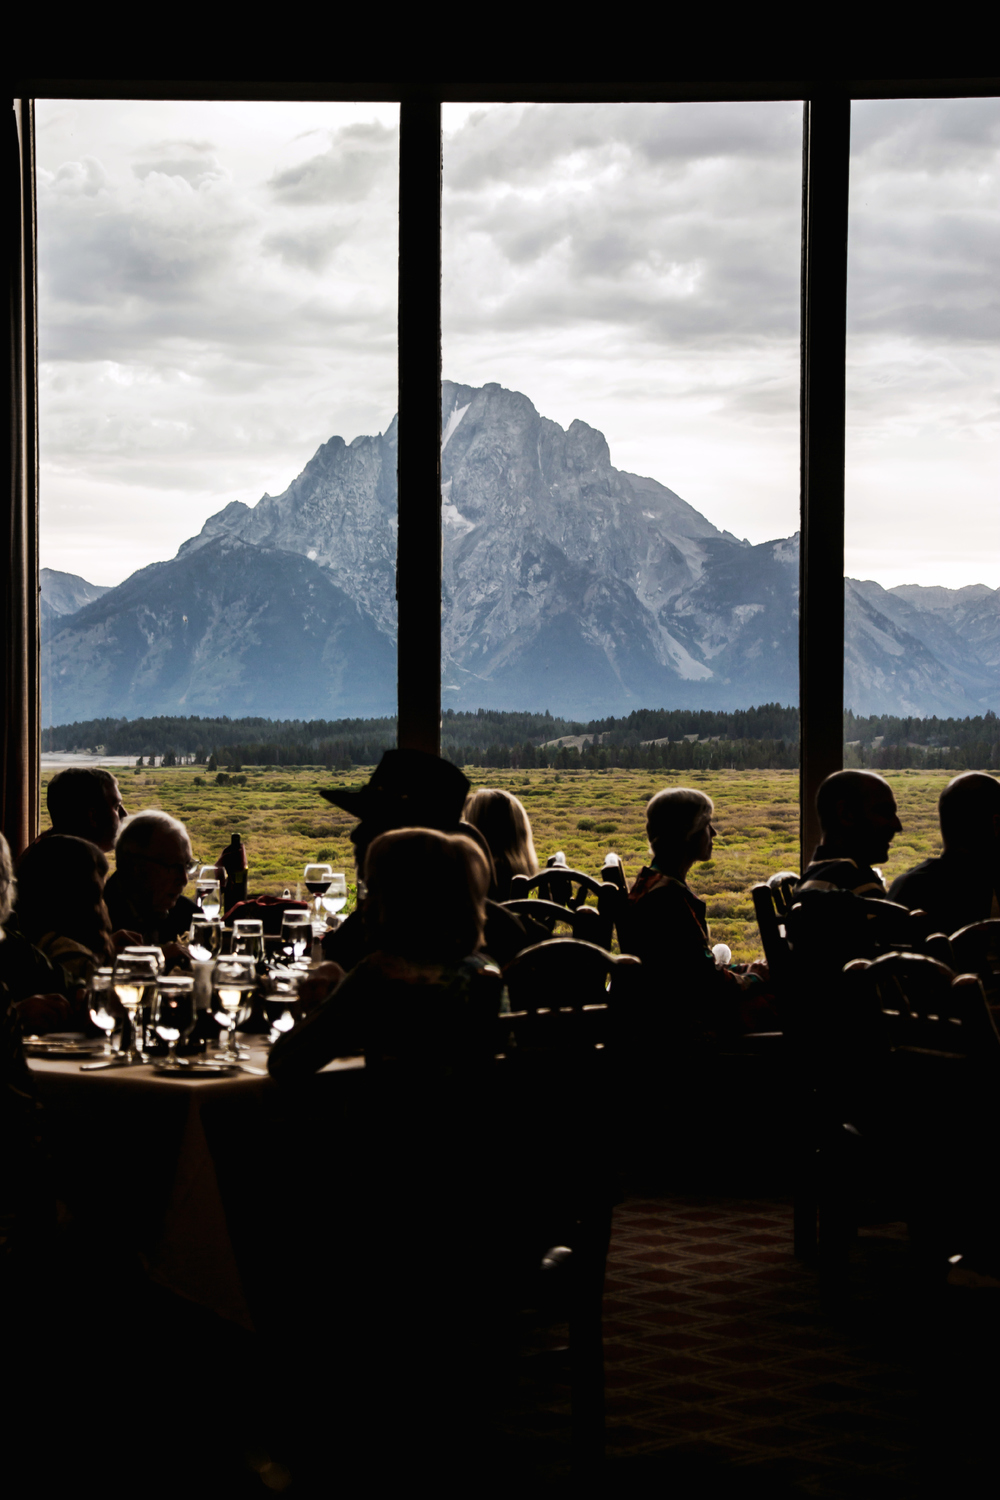 jackson lake lodge restaurant.jpg